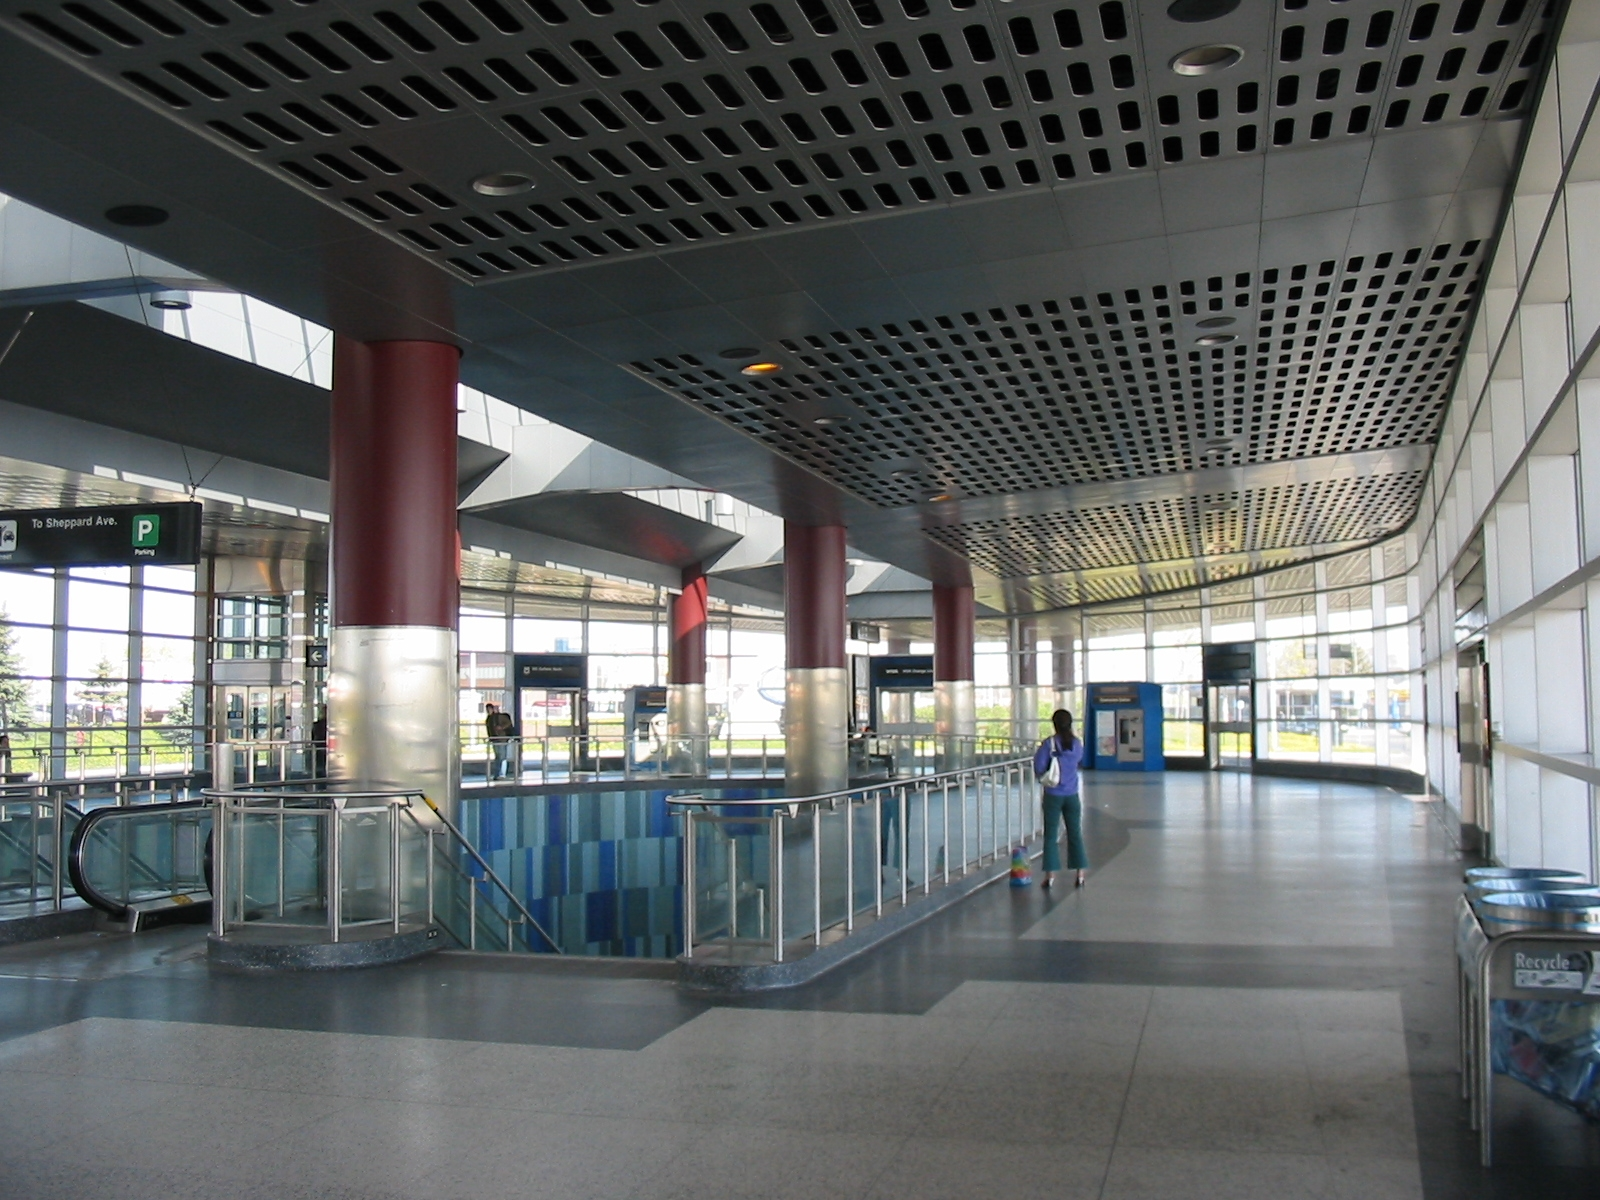 File:Downsview TTC Station Ceiling.jpg - Wikimedia Commons